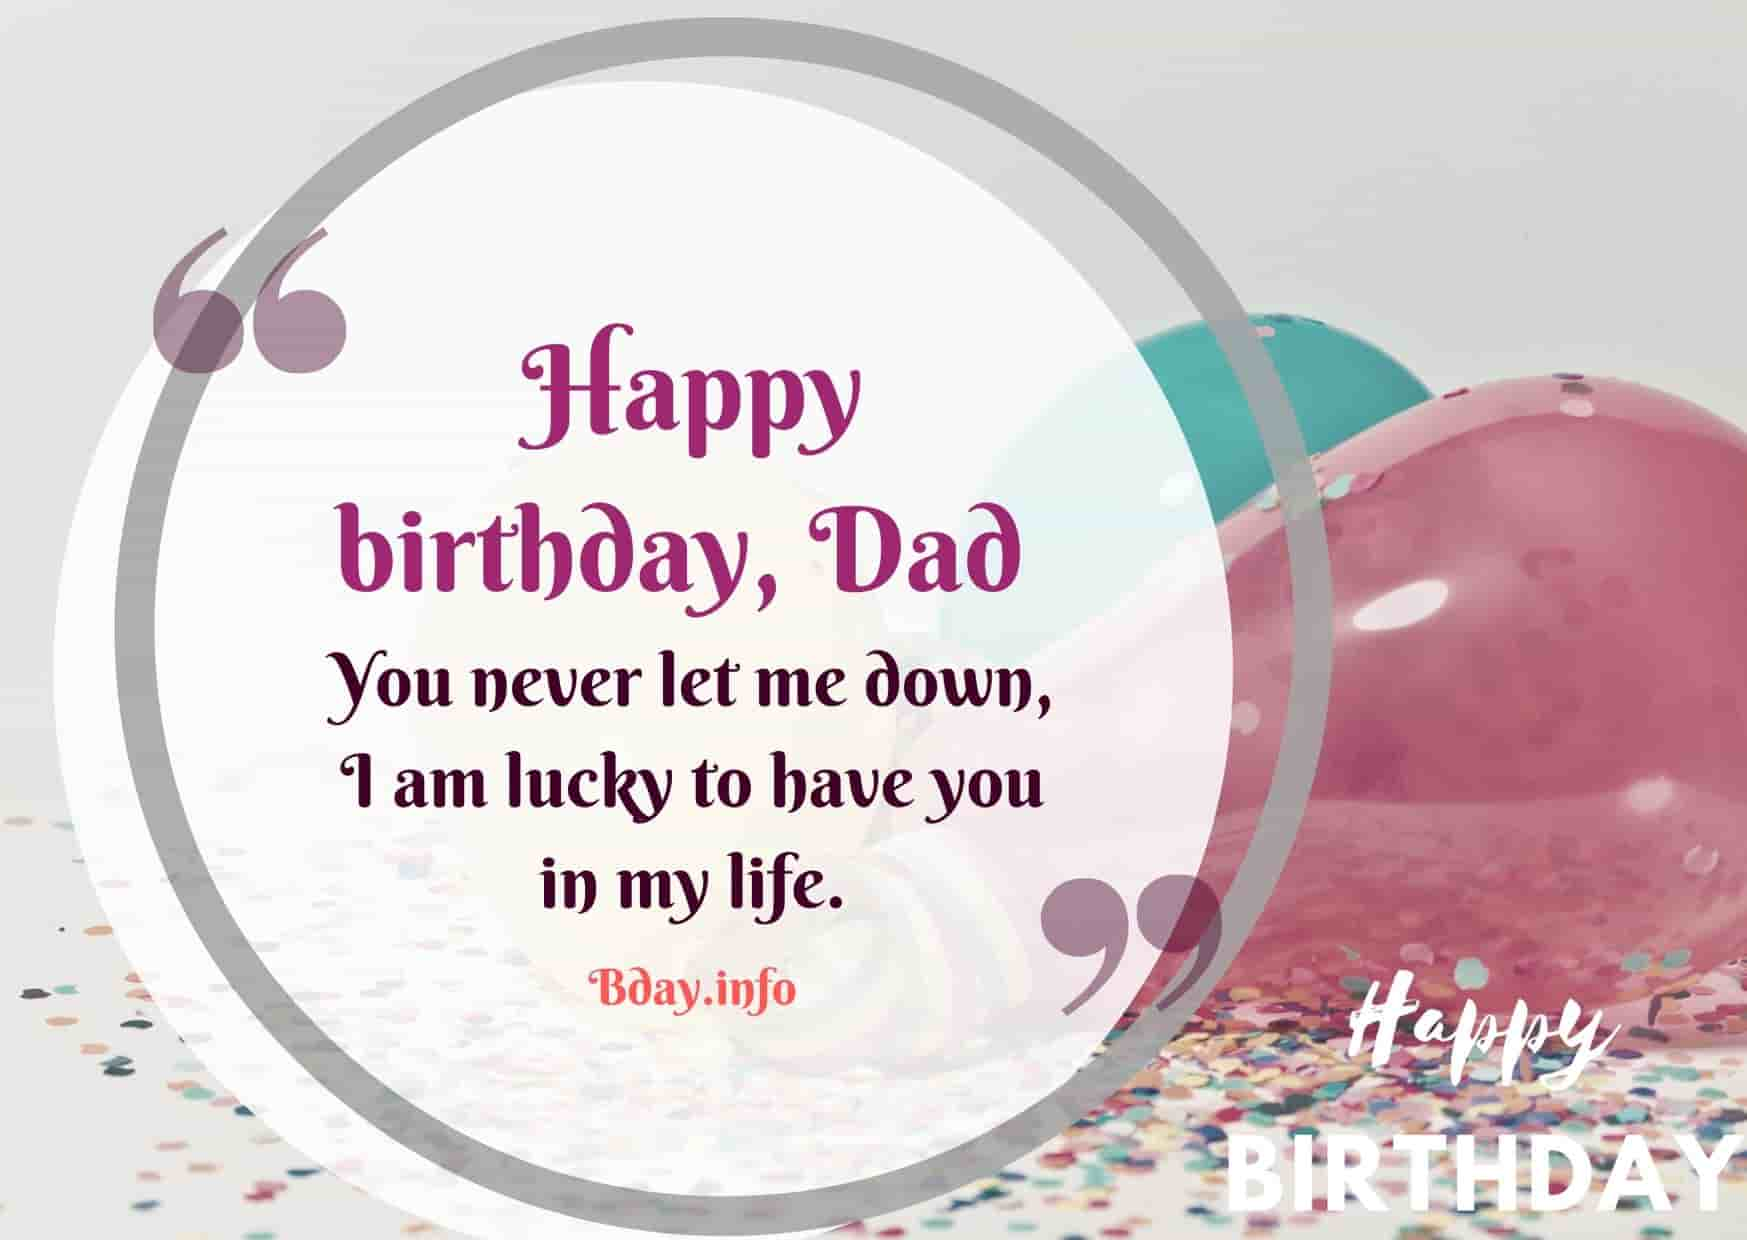 Wishing You A Very Happy Birthday Dad Wishes And Images